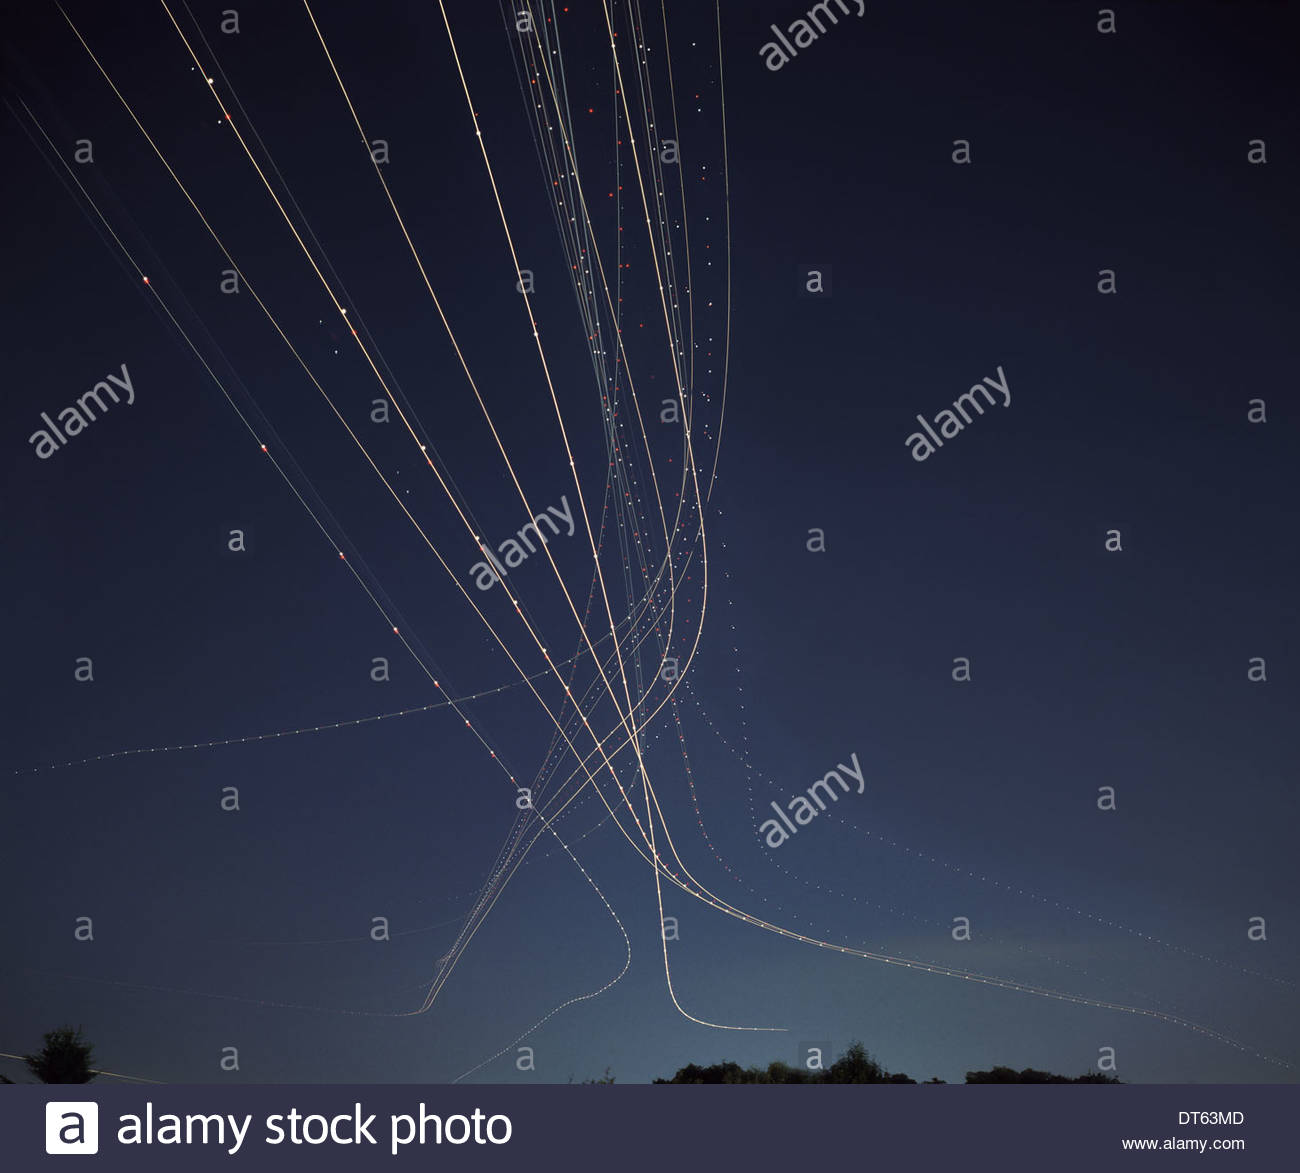 Light trails from aircraft taking off in night sky Stock Photo